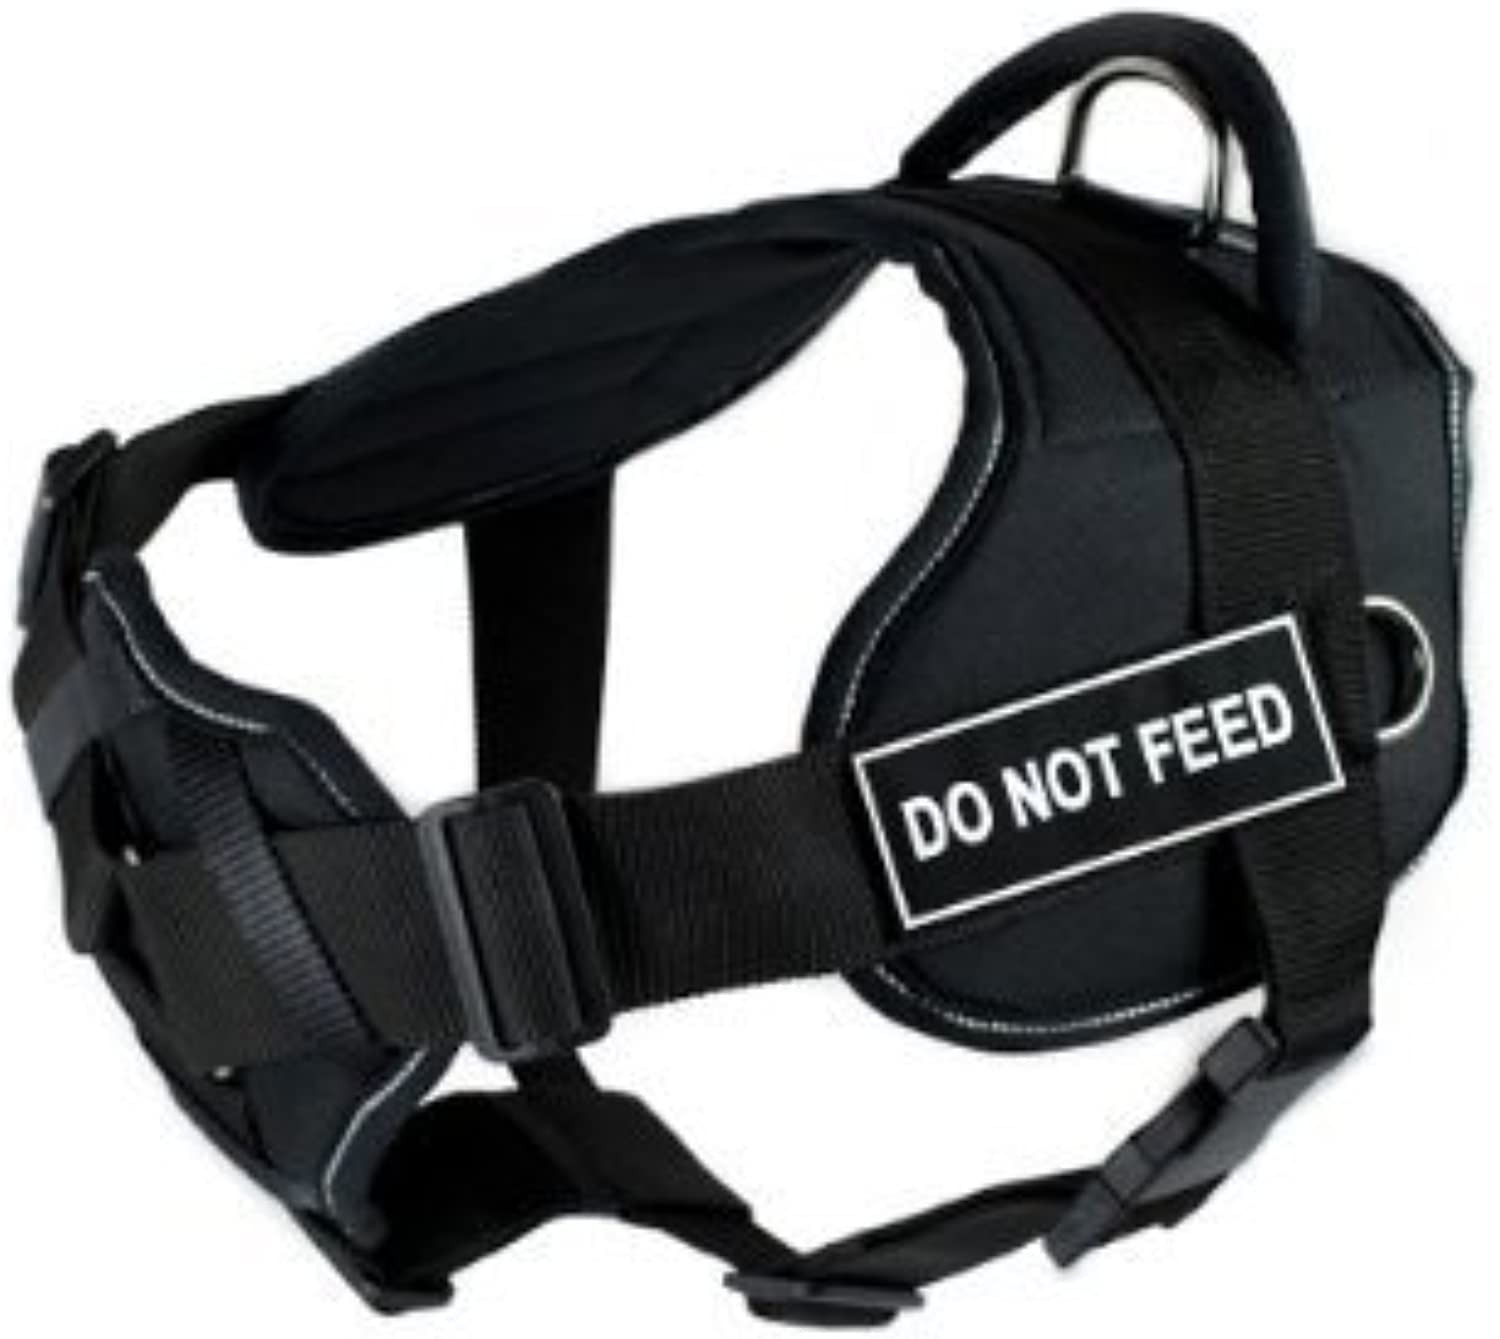 Dean & Tyler Black with Reflective Trim Fun Dog Harness with Padded Chest Piece, Do Not Feed, Small, Fits Girth Size 22Inch to 27Inch